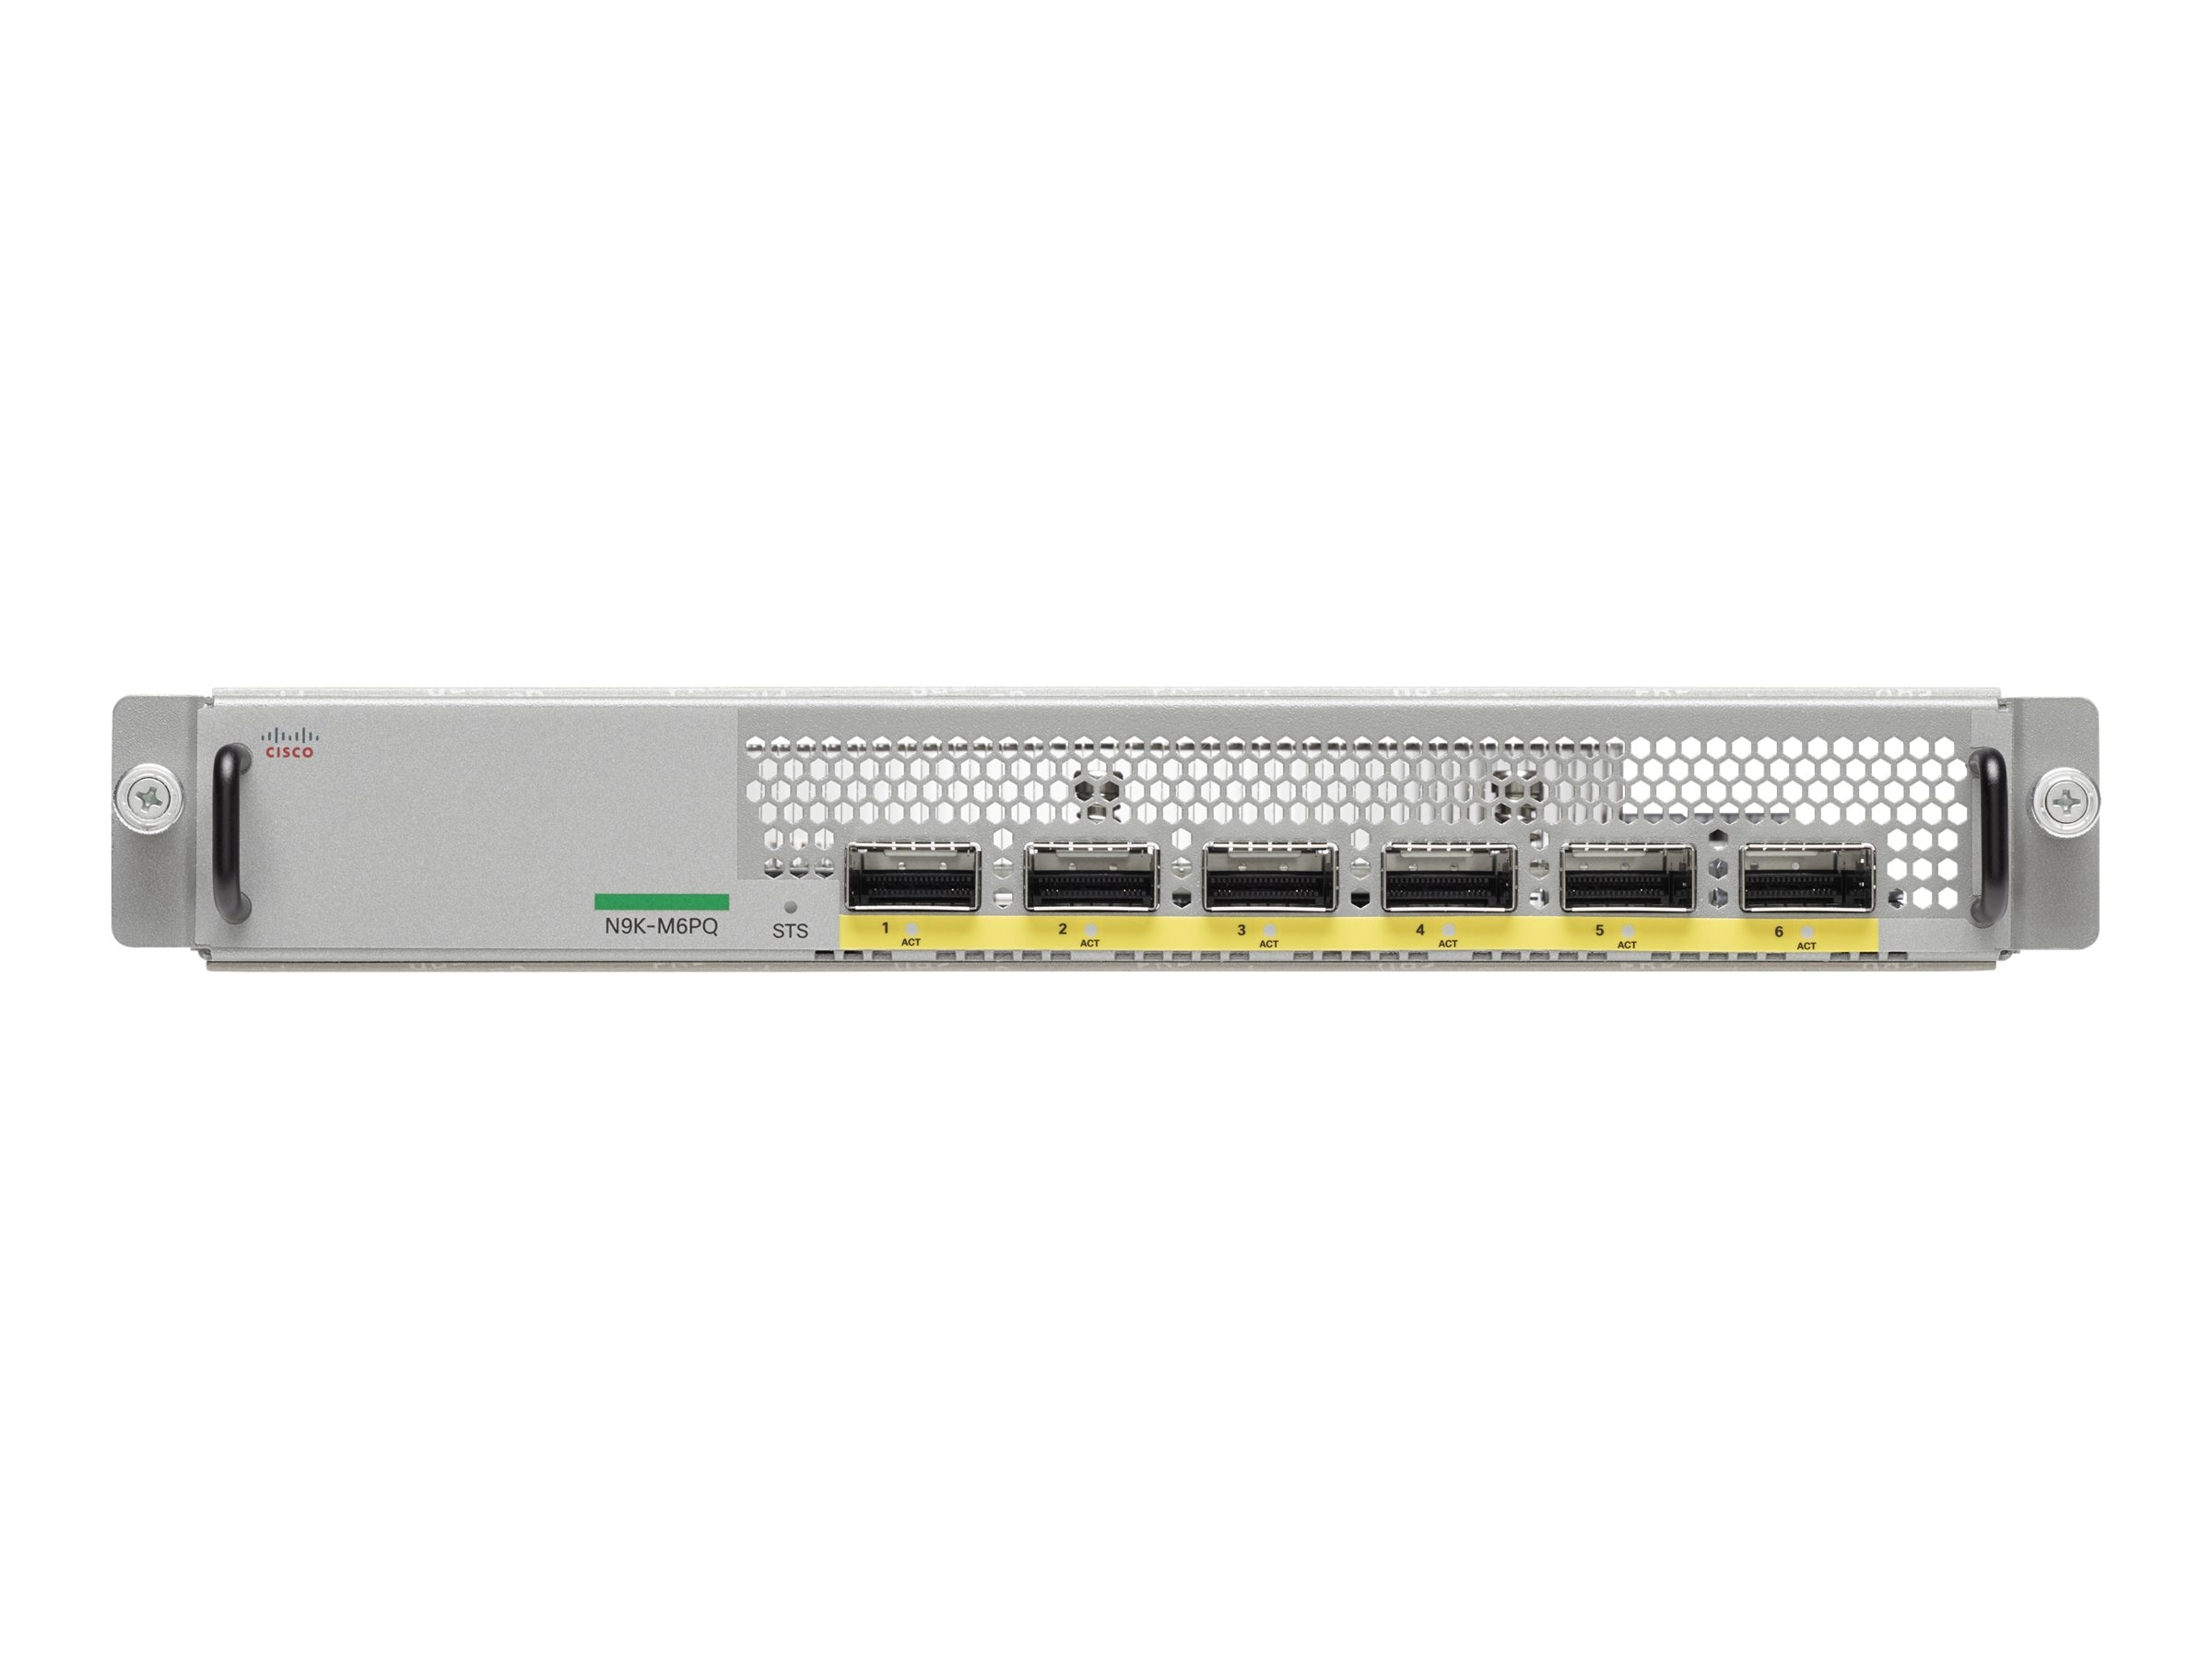 Cisco 6-port 40G QSFP Uplink Module for Nexus 9300, N9K-M6PQ